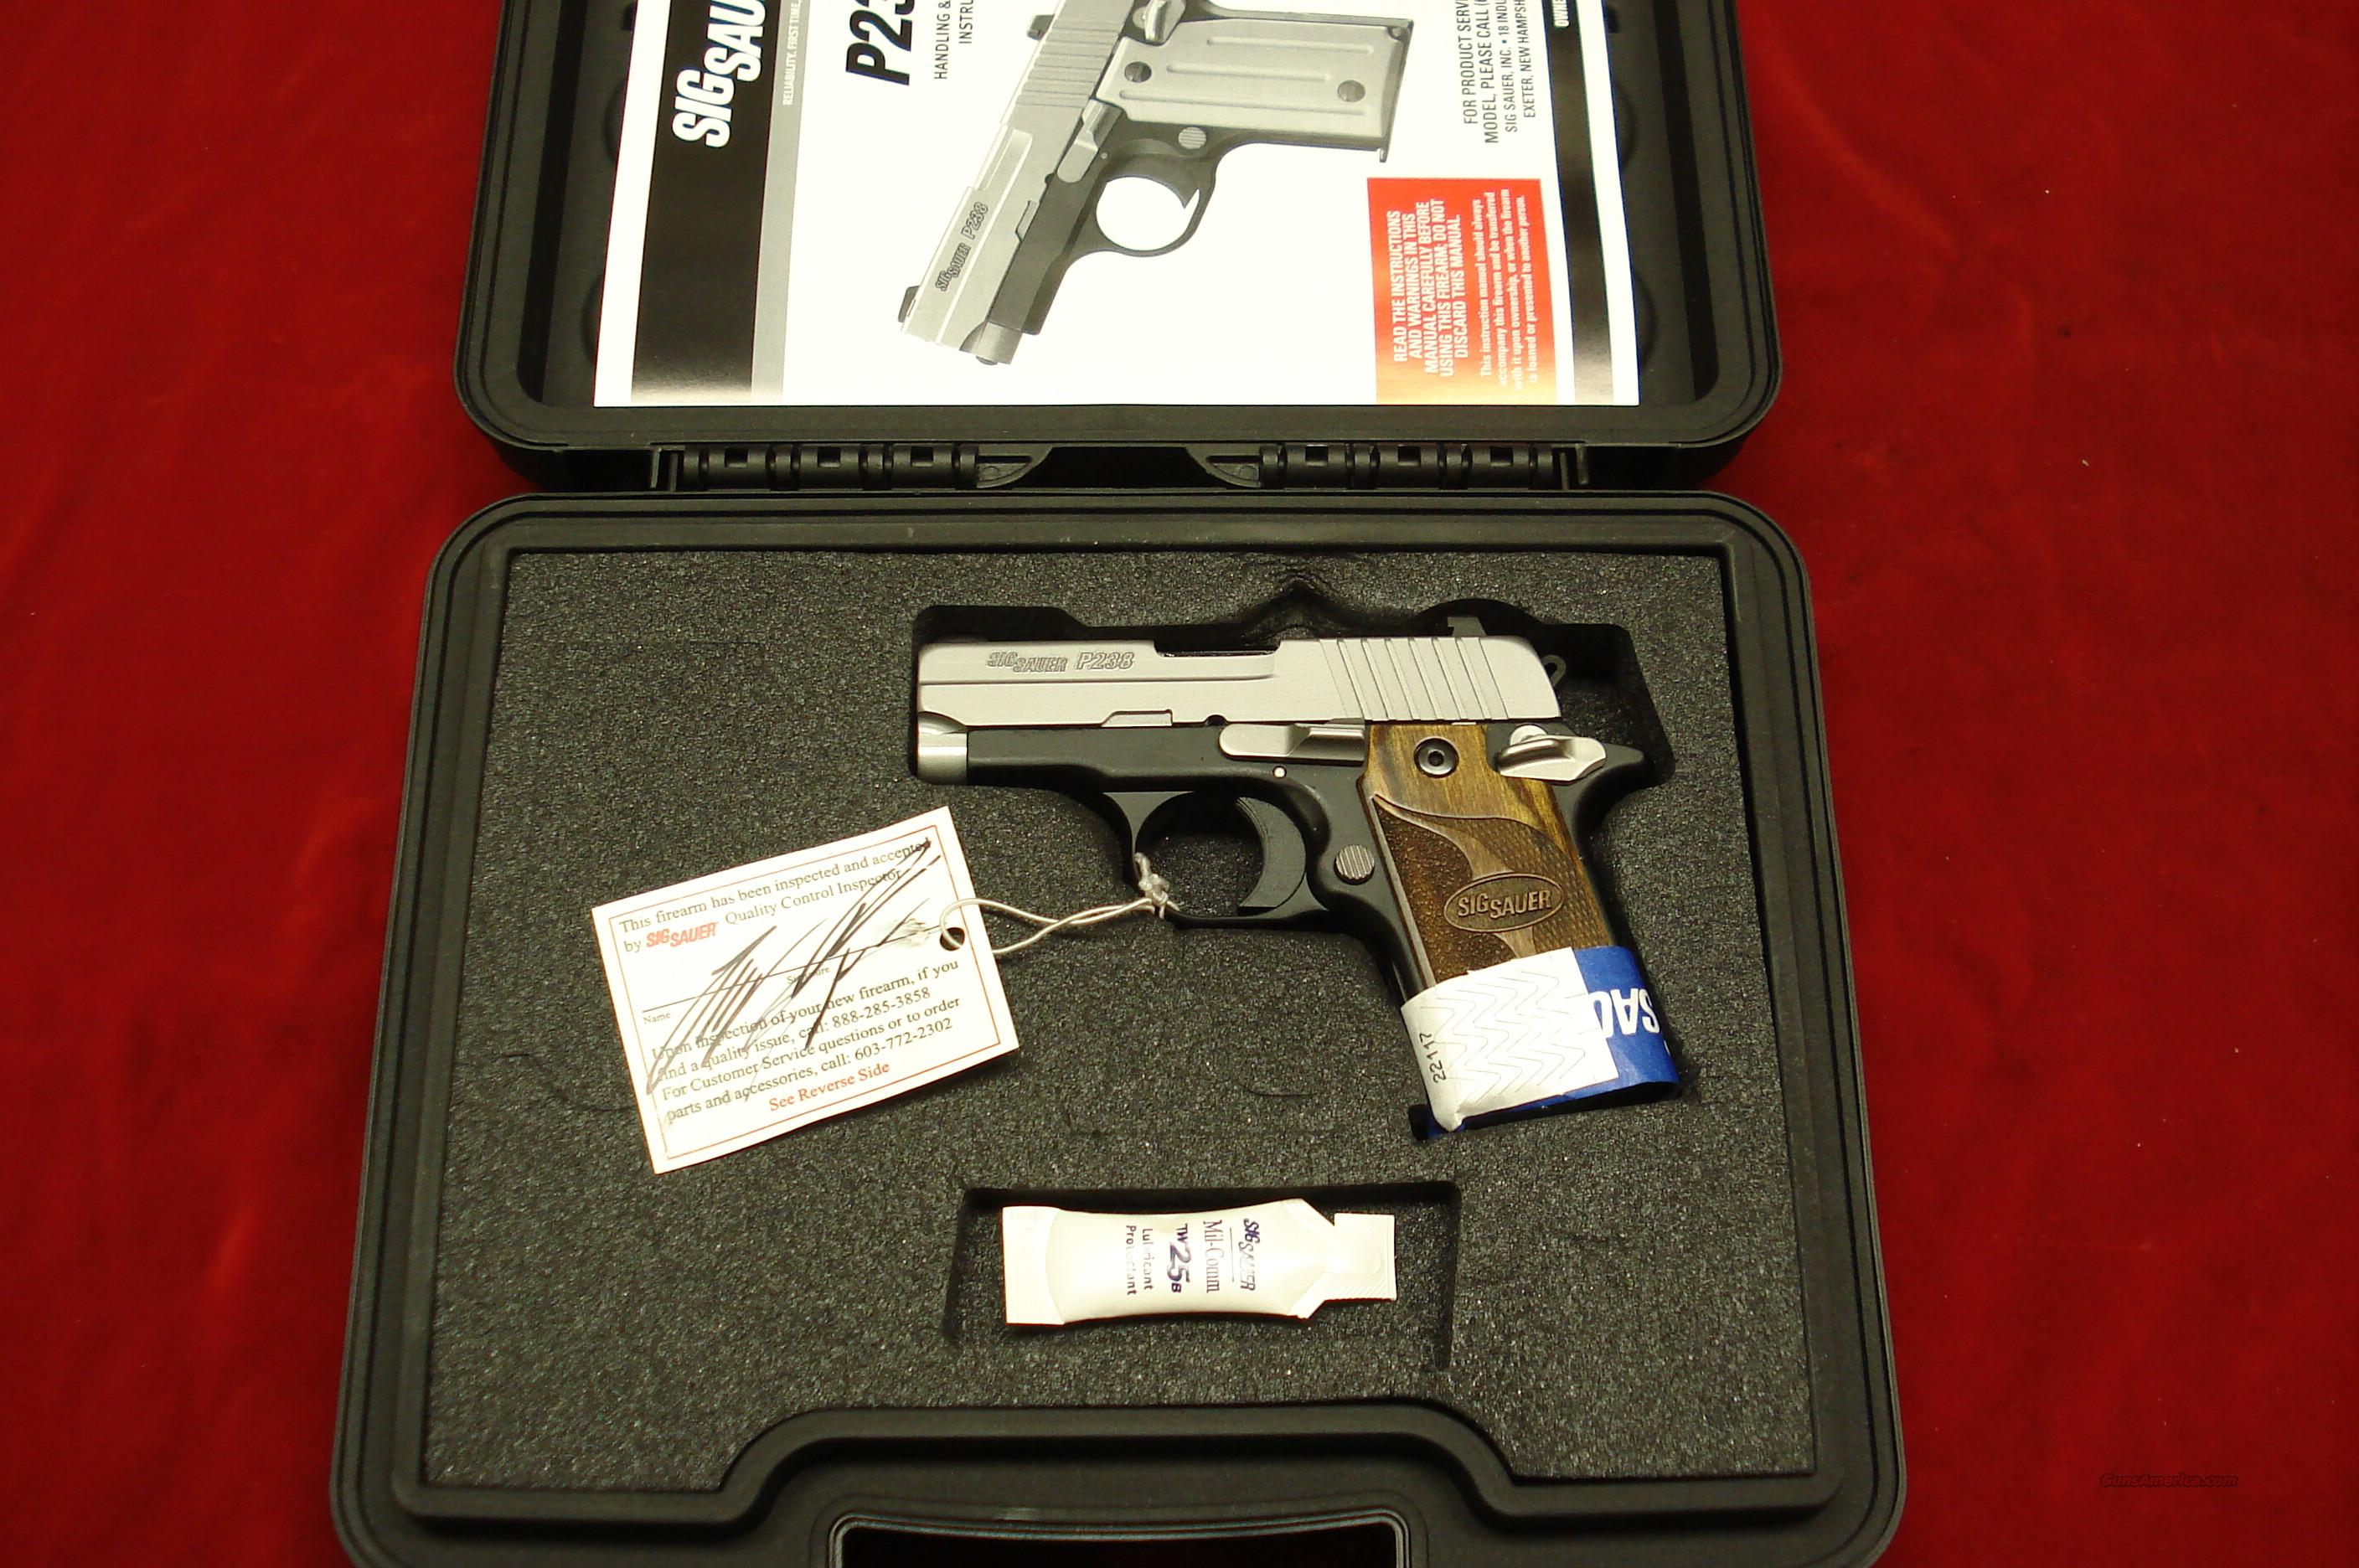 SIG SAUER P238 SAS STAINLESS DUO-TONE 380CAL. W/NIGHT SIGHTS NEW   Guns > Pistols > Sig - Sauer/Sigarms Pistols > Other